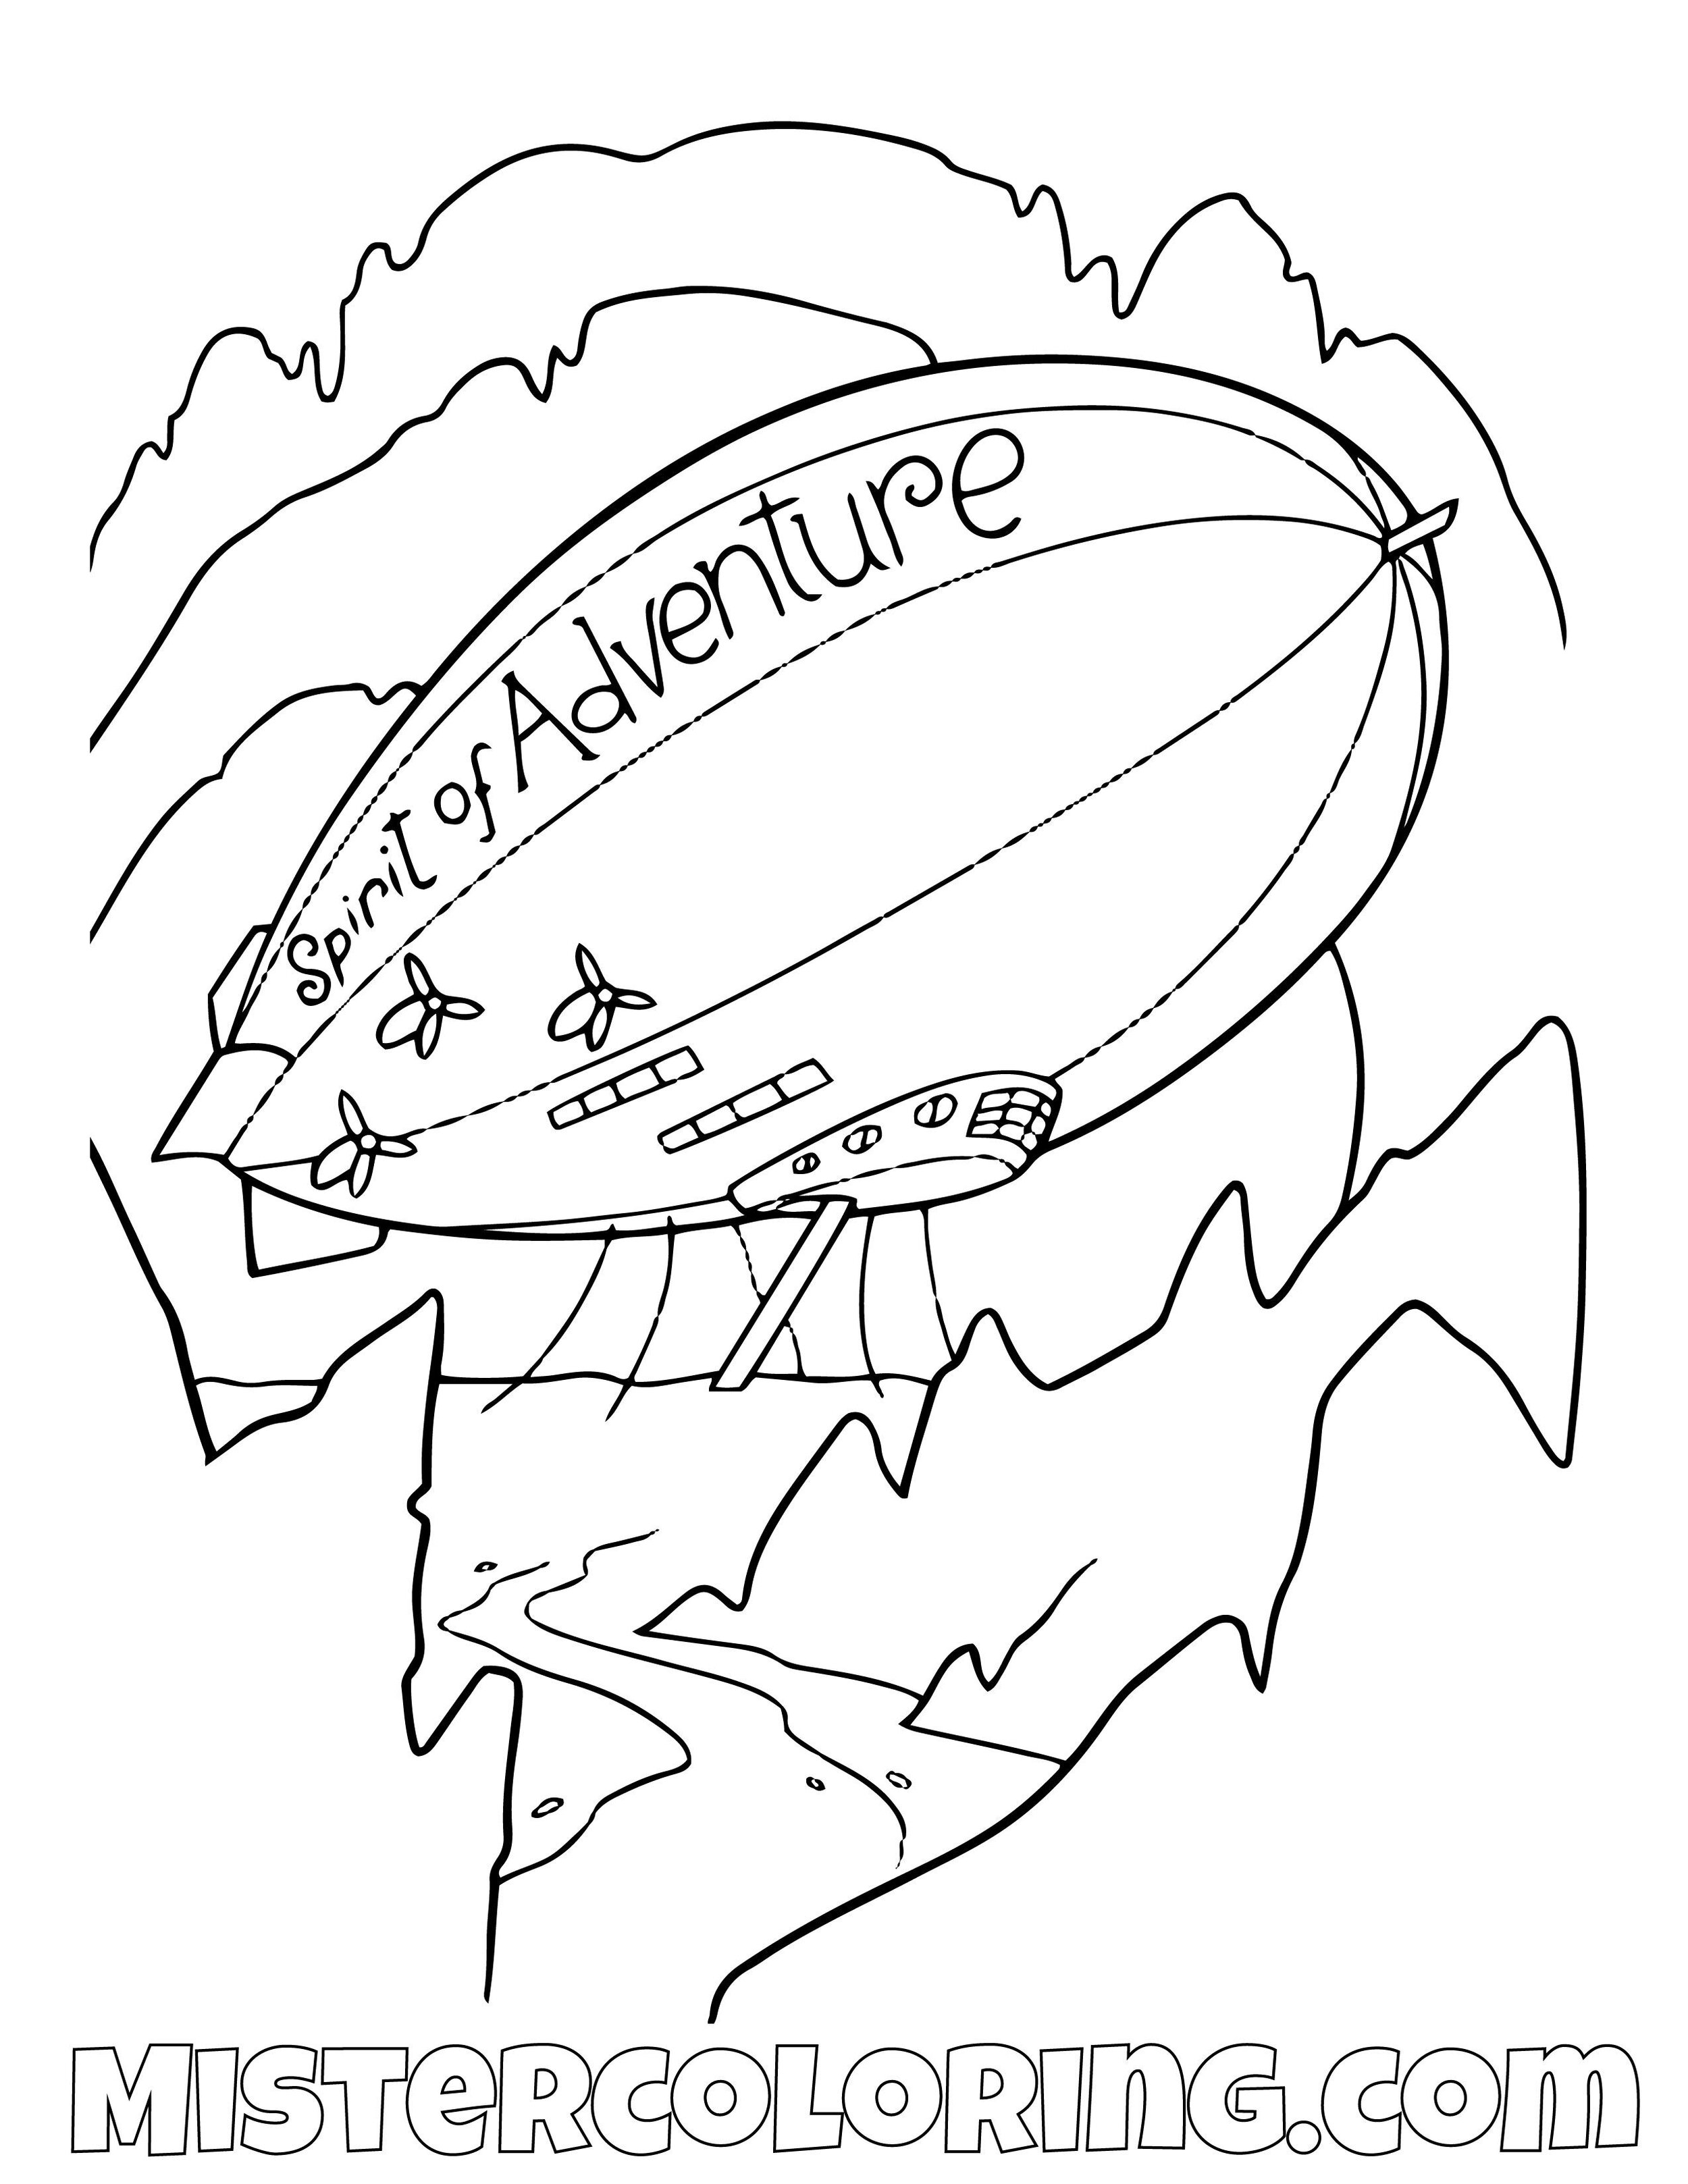 Spirit The Movie Coloring Pages | Printable Coloring Pages ... | 1294x1000